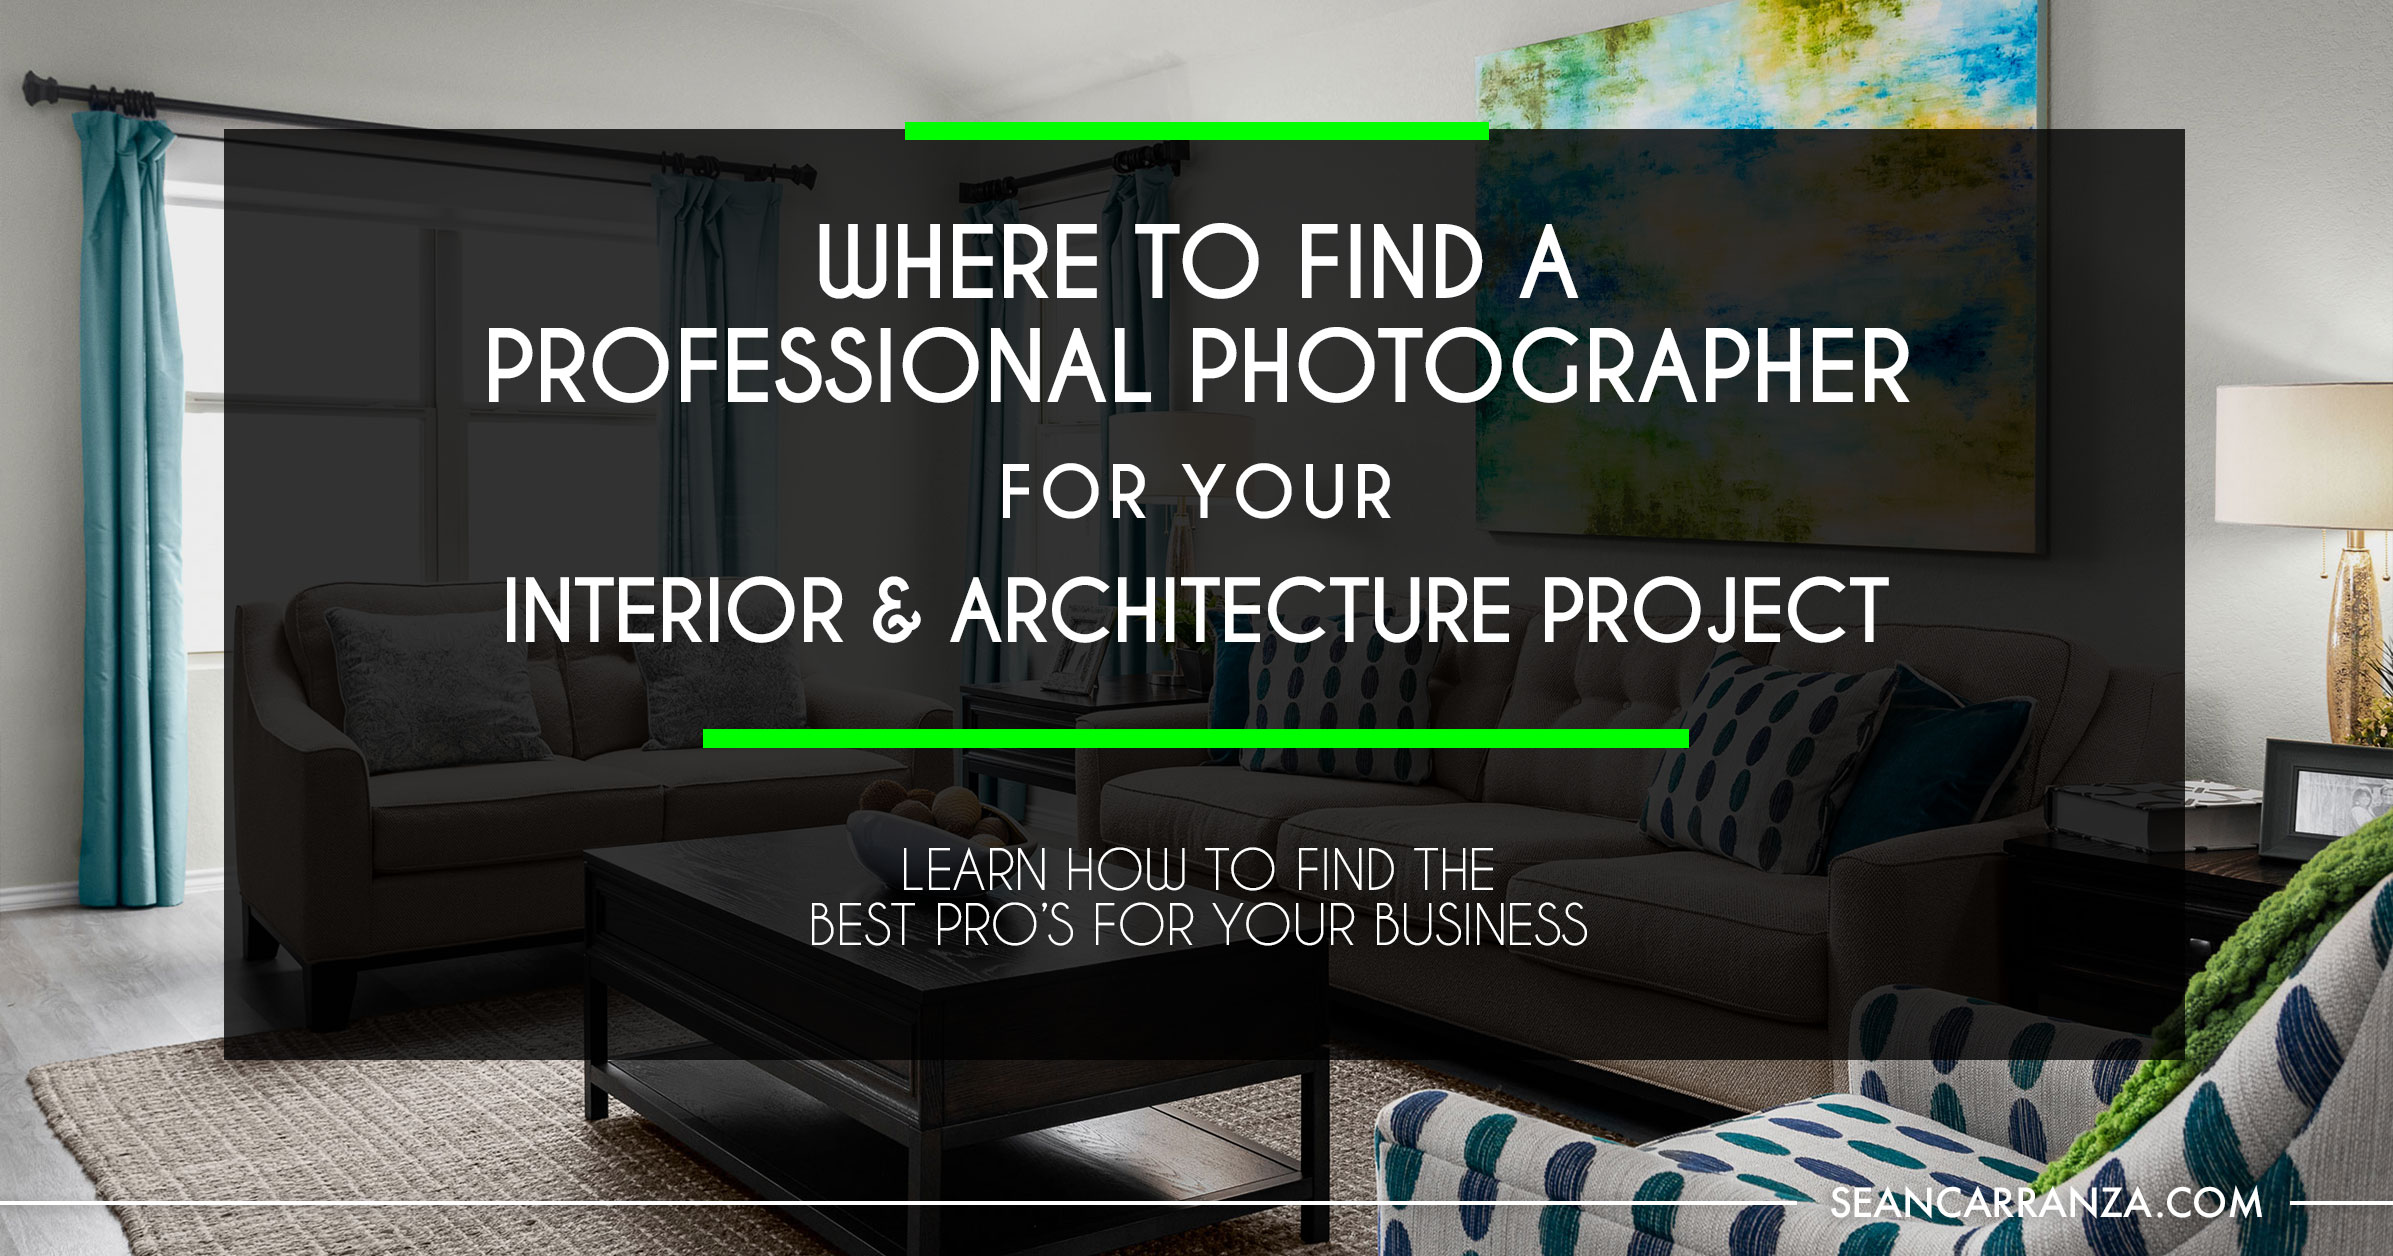 BLOG-Where-to-Find-a-Professional-Photographer-for-Your-Interior-and-Archiecture.jpg